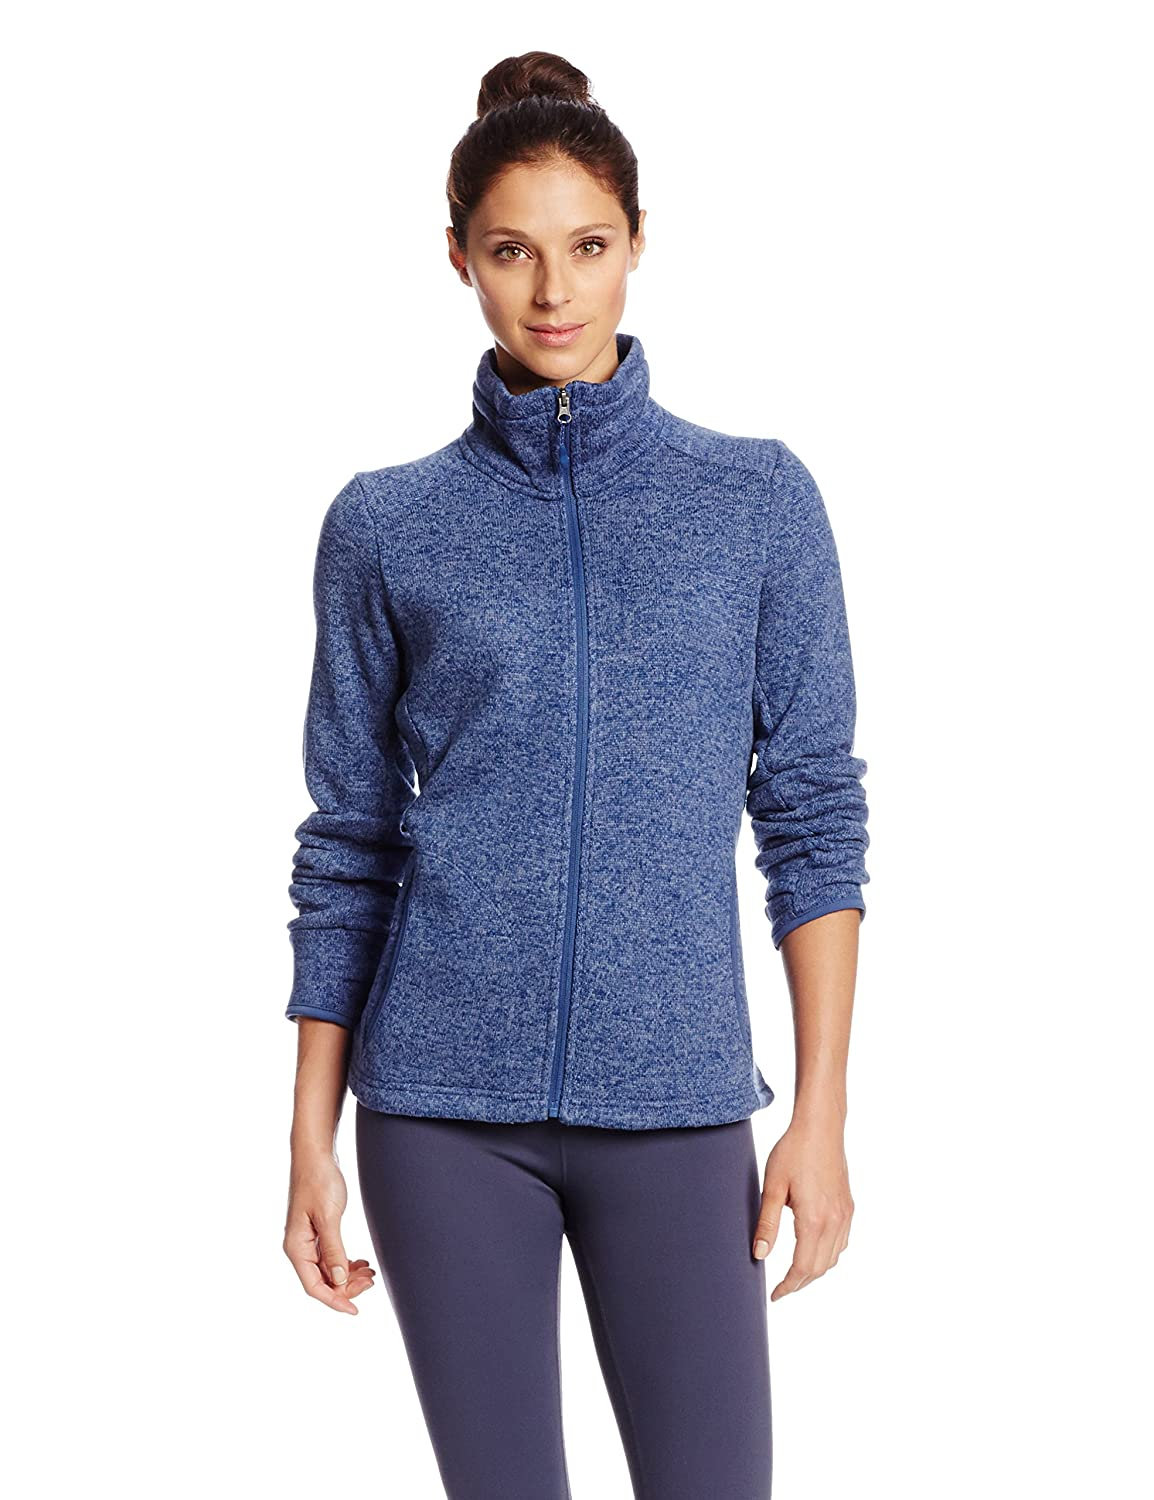 bluee Heather Charles River Apparel Women's Heathered Fleece Jacket